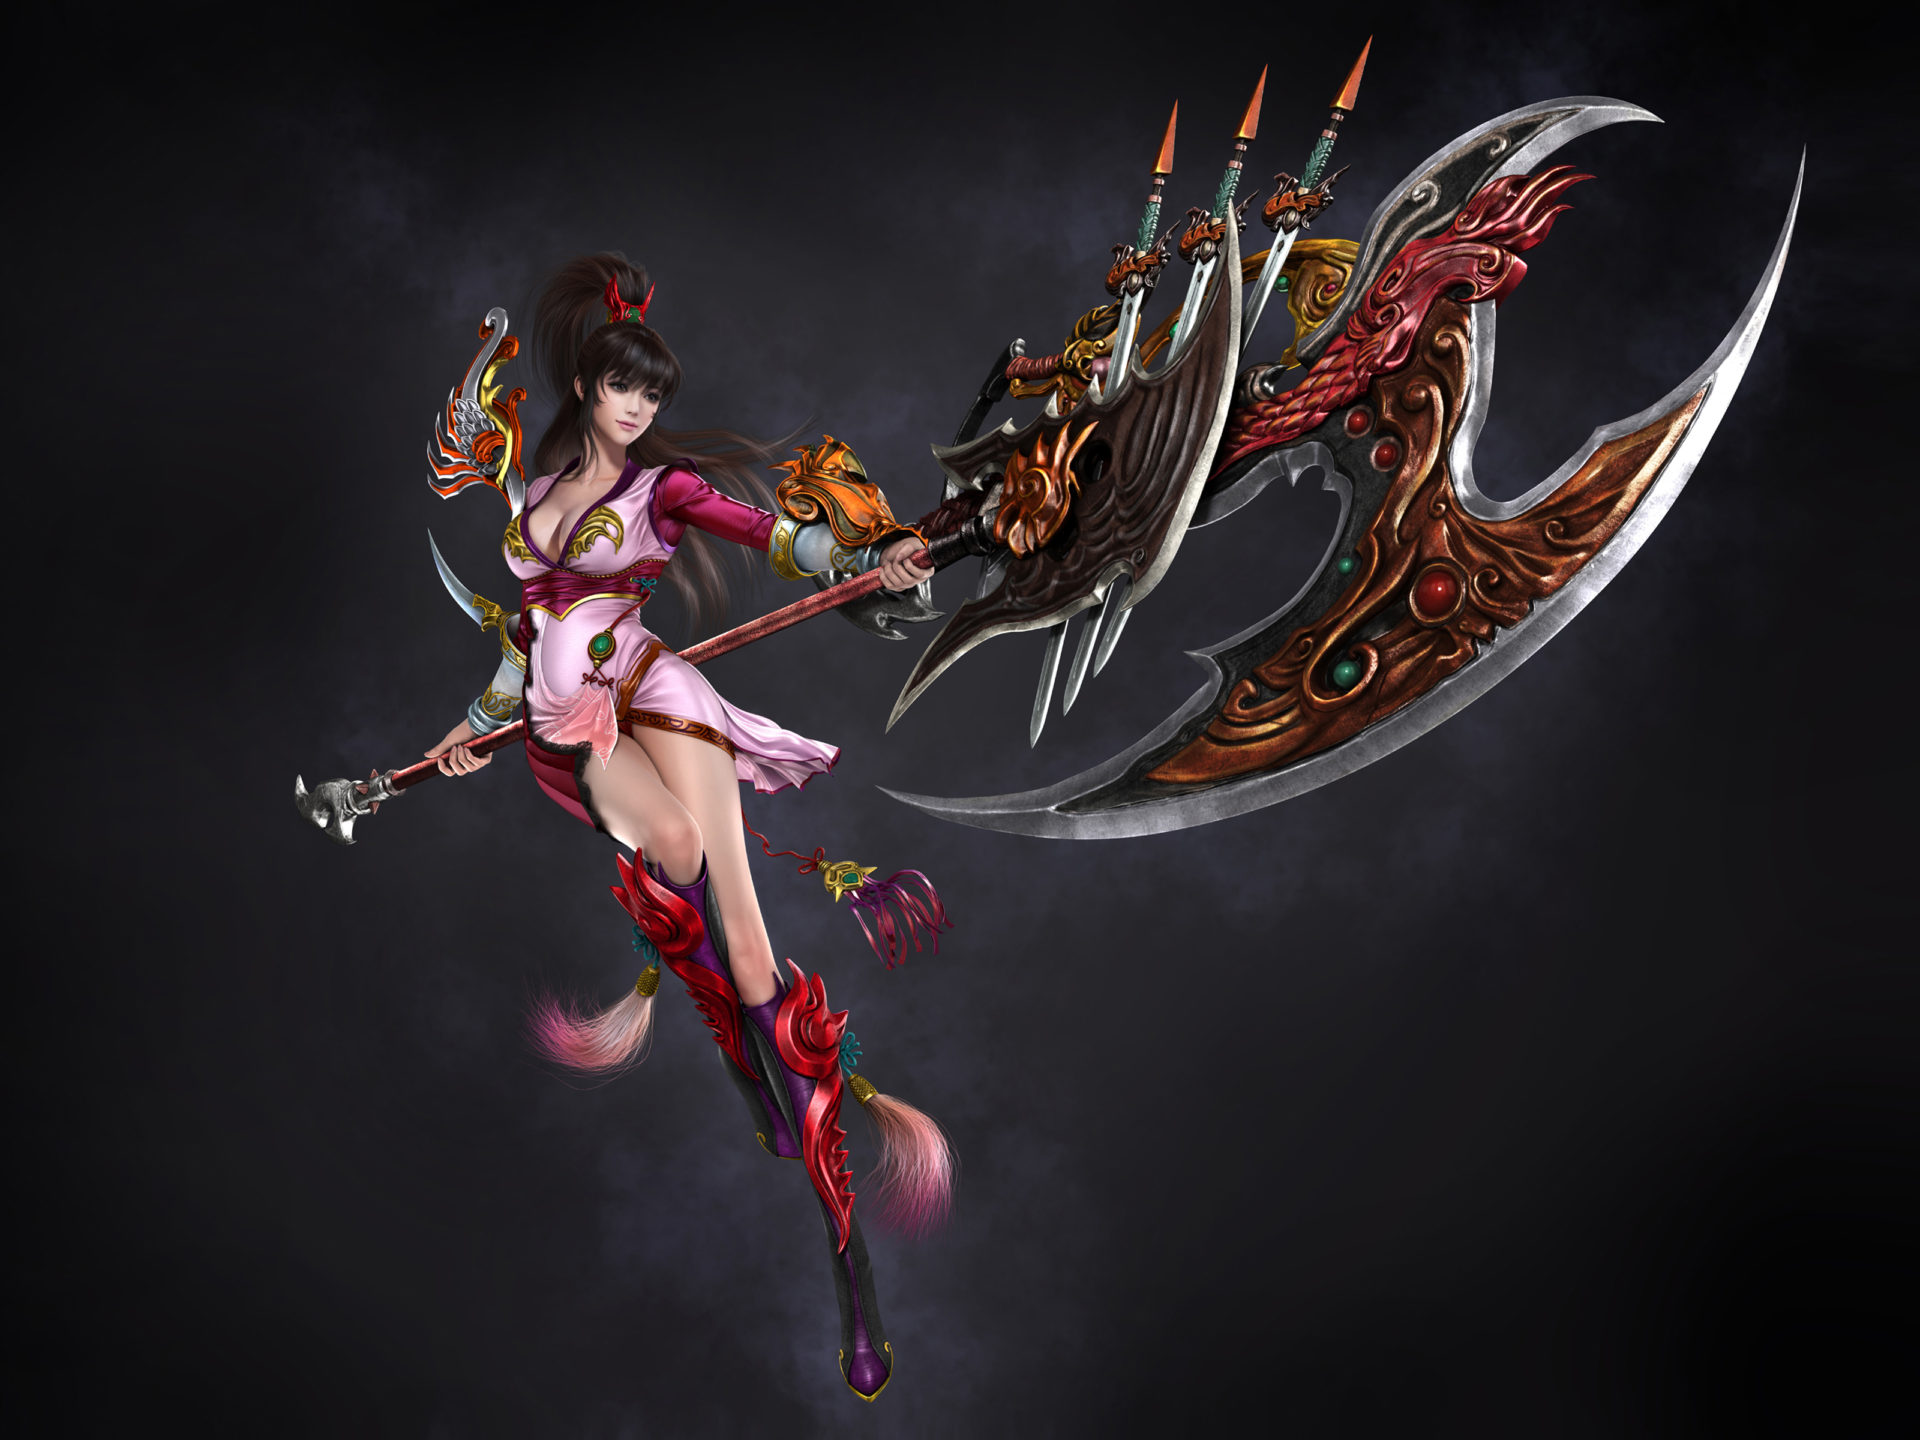 Animated Wallpaper Android Tablet Dynasty Jade Regenesis Video Game Character Girl With An